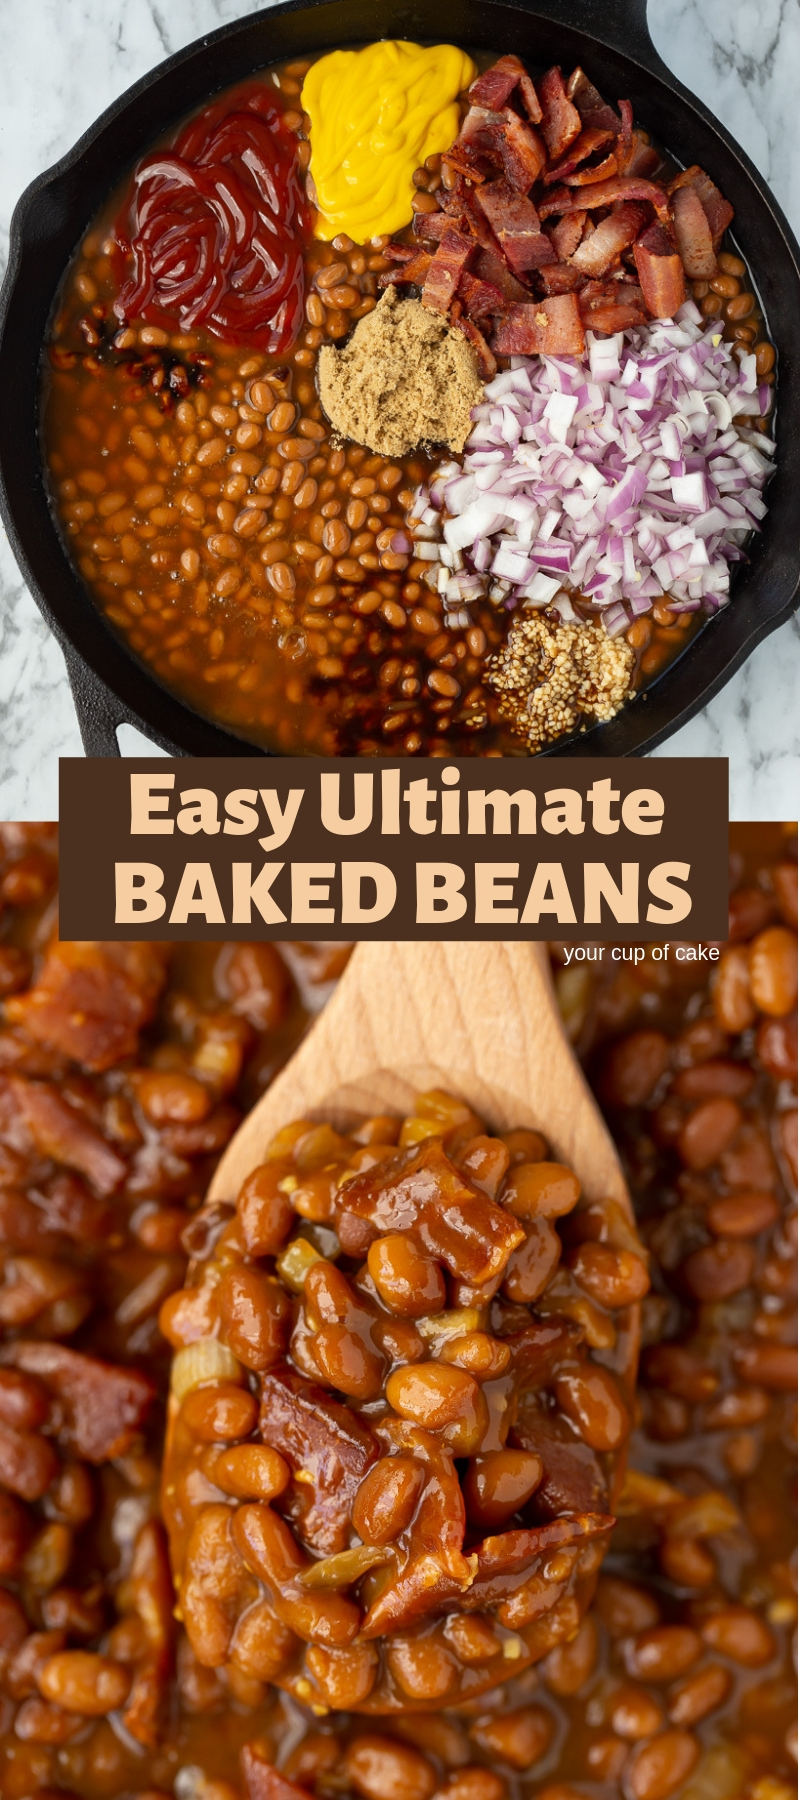 Make canned beans even better with this AWESOME recipe! Easy Ultimate Baked Beans